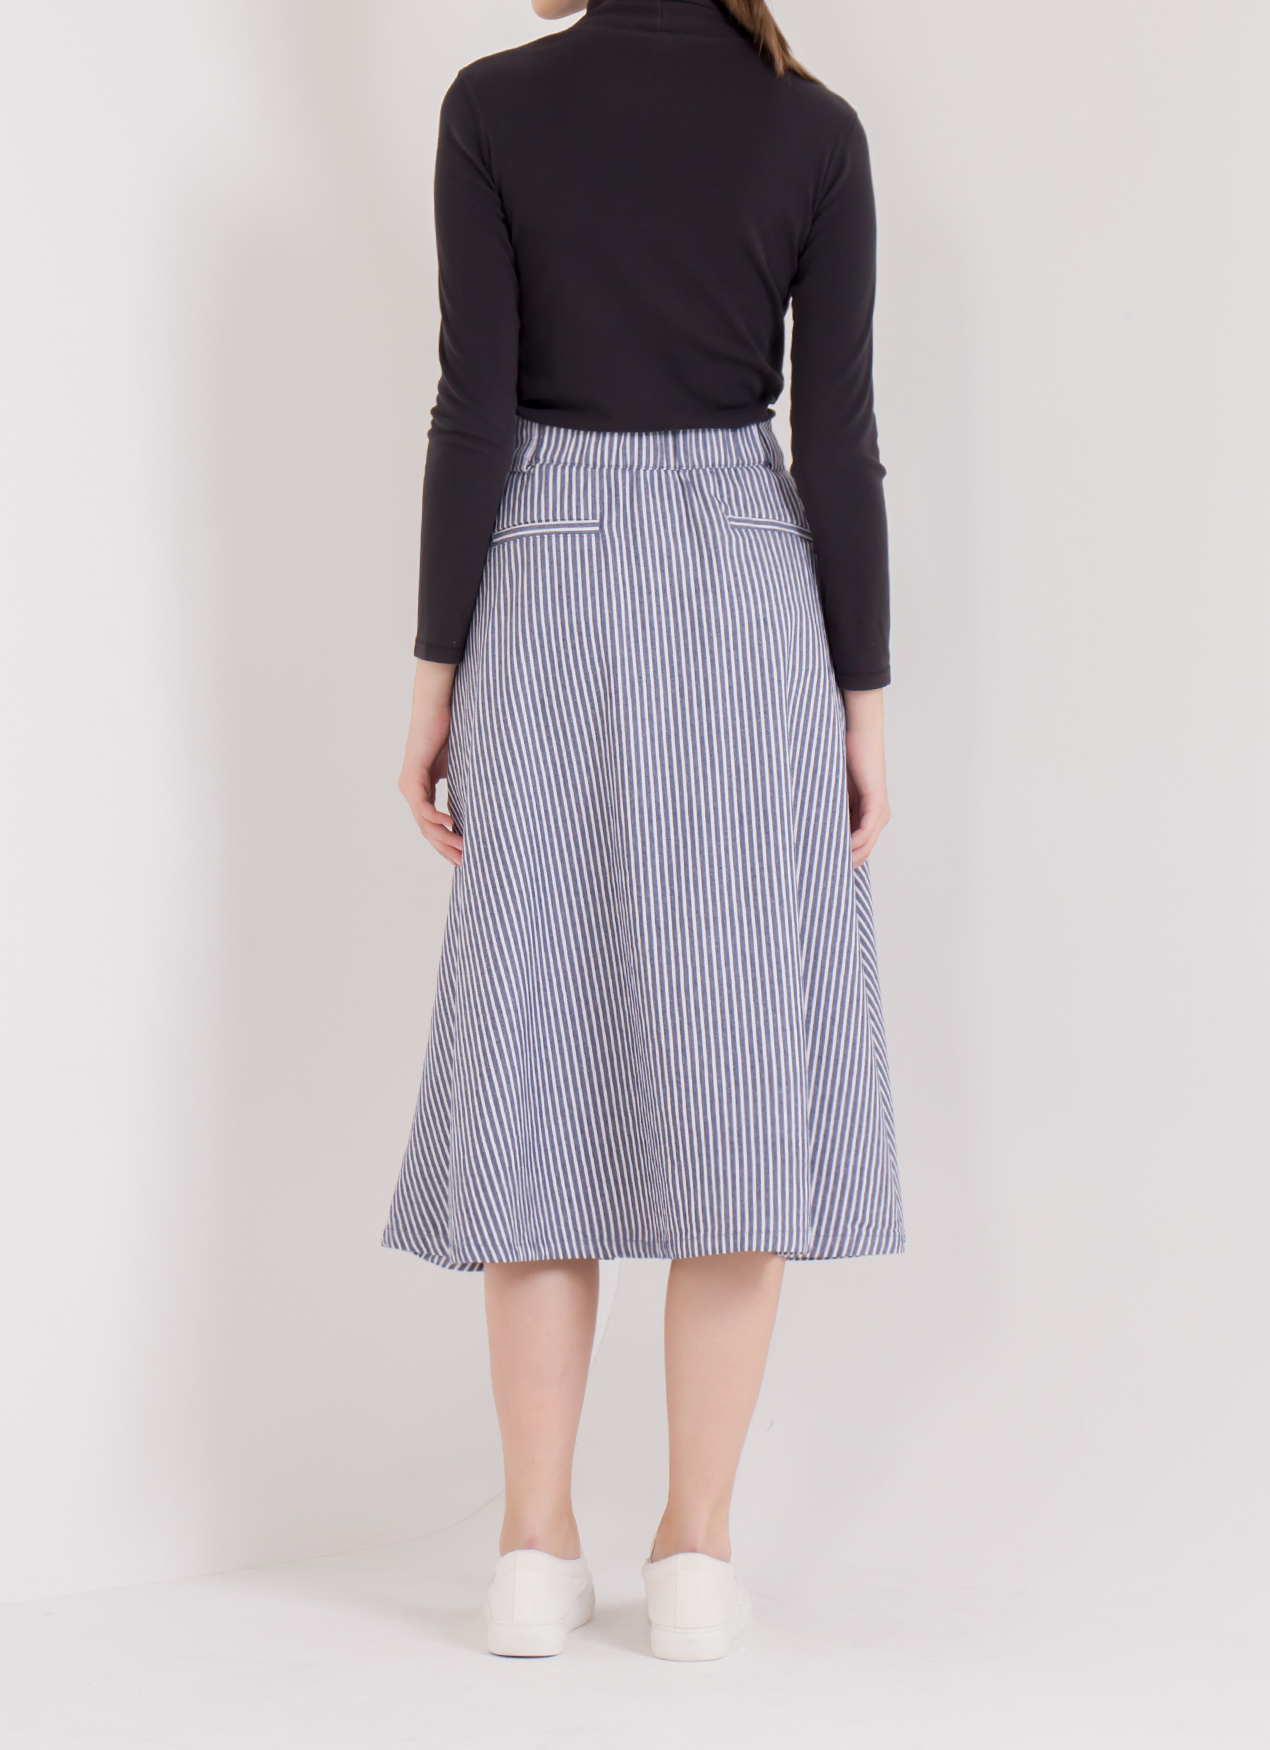 American Holic Julia Skirt - Stripe